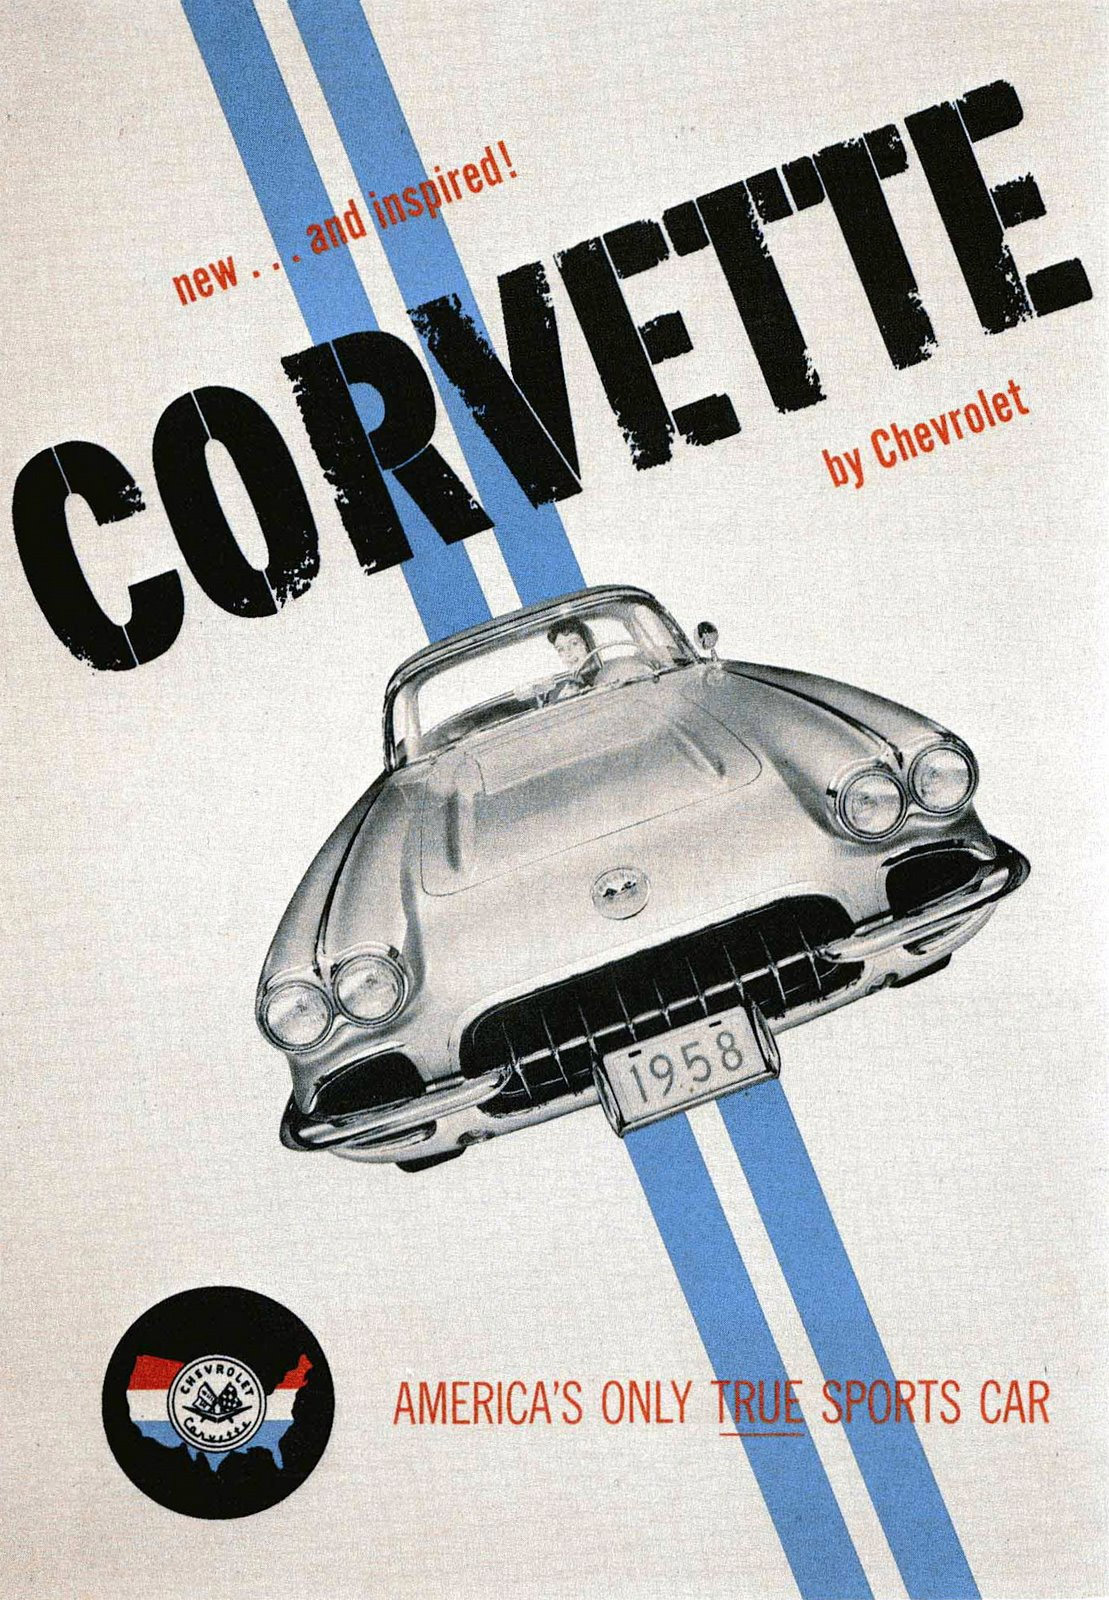 Corvette Ad Watch: 1958 Corvette Dealer Poster